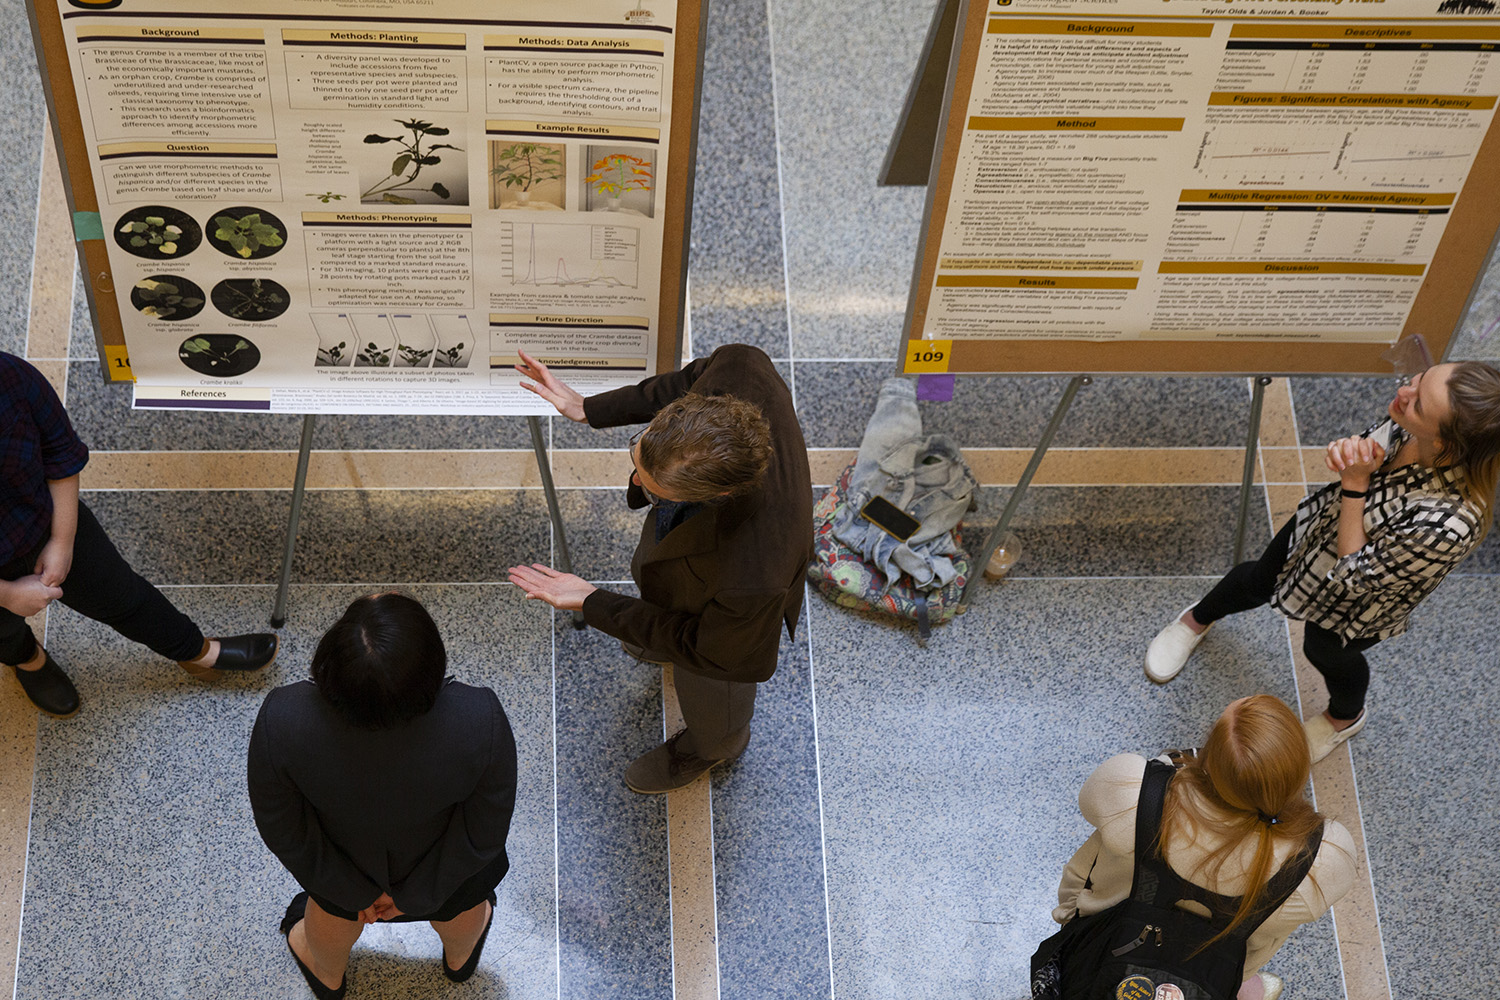 Students explain projects at Undergraduate Research Forum